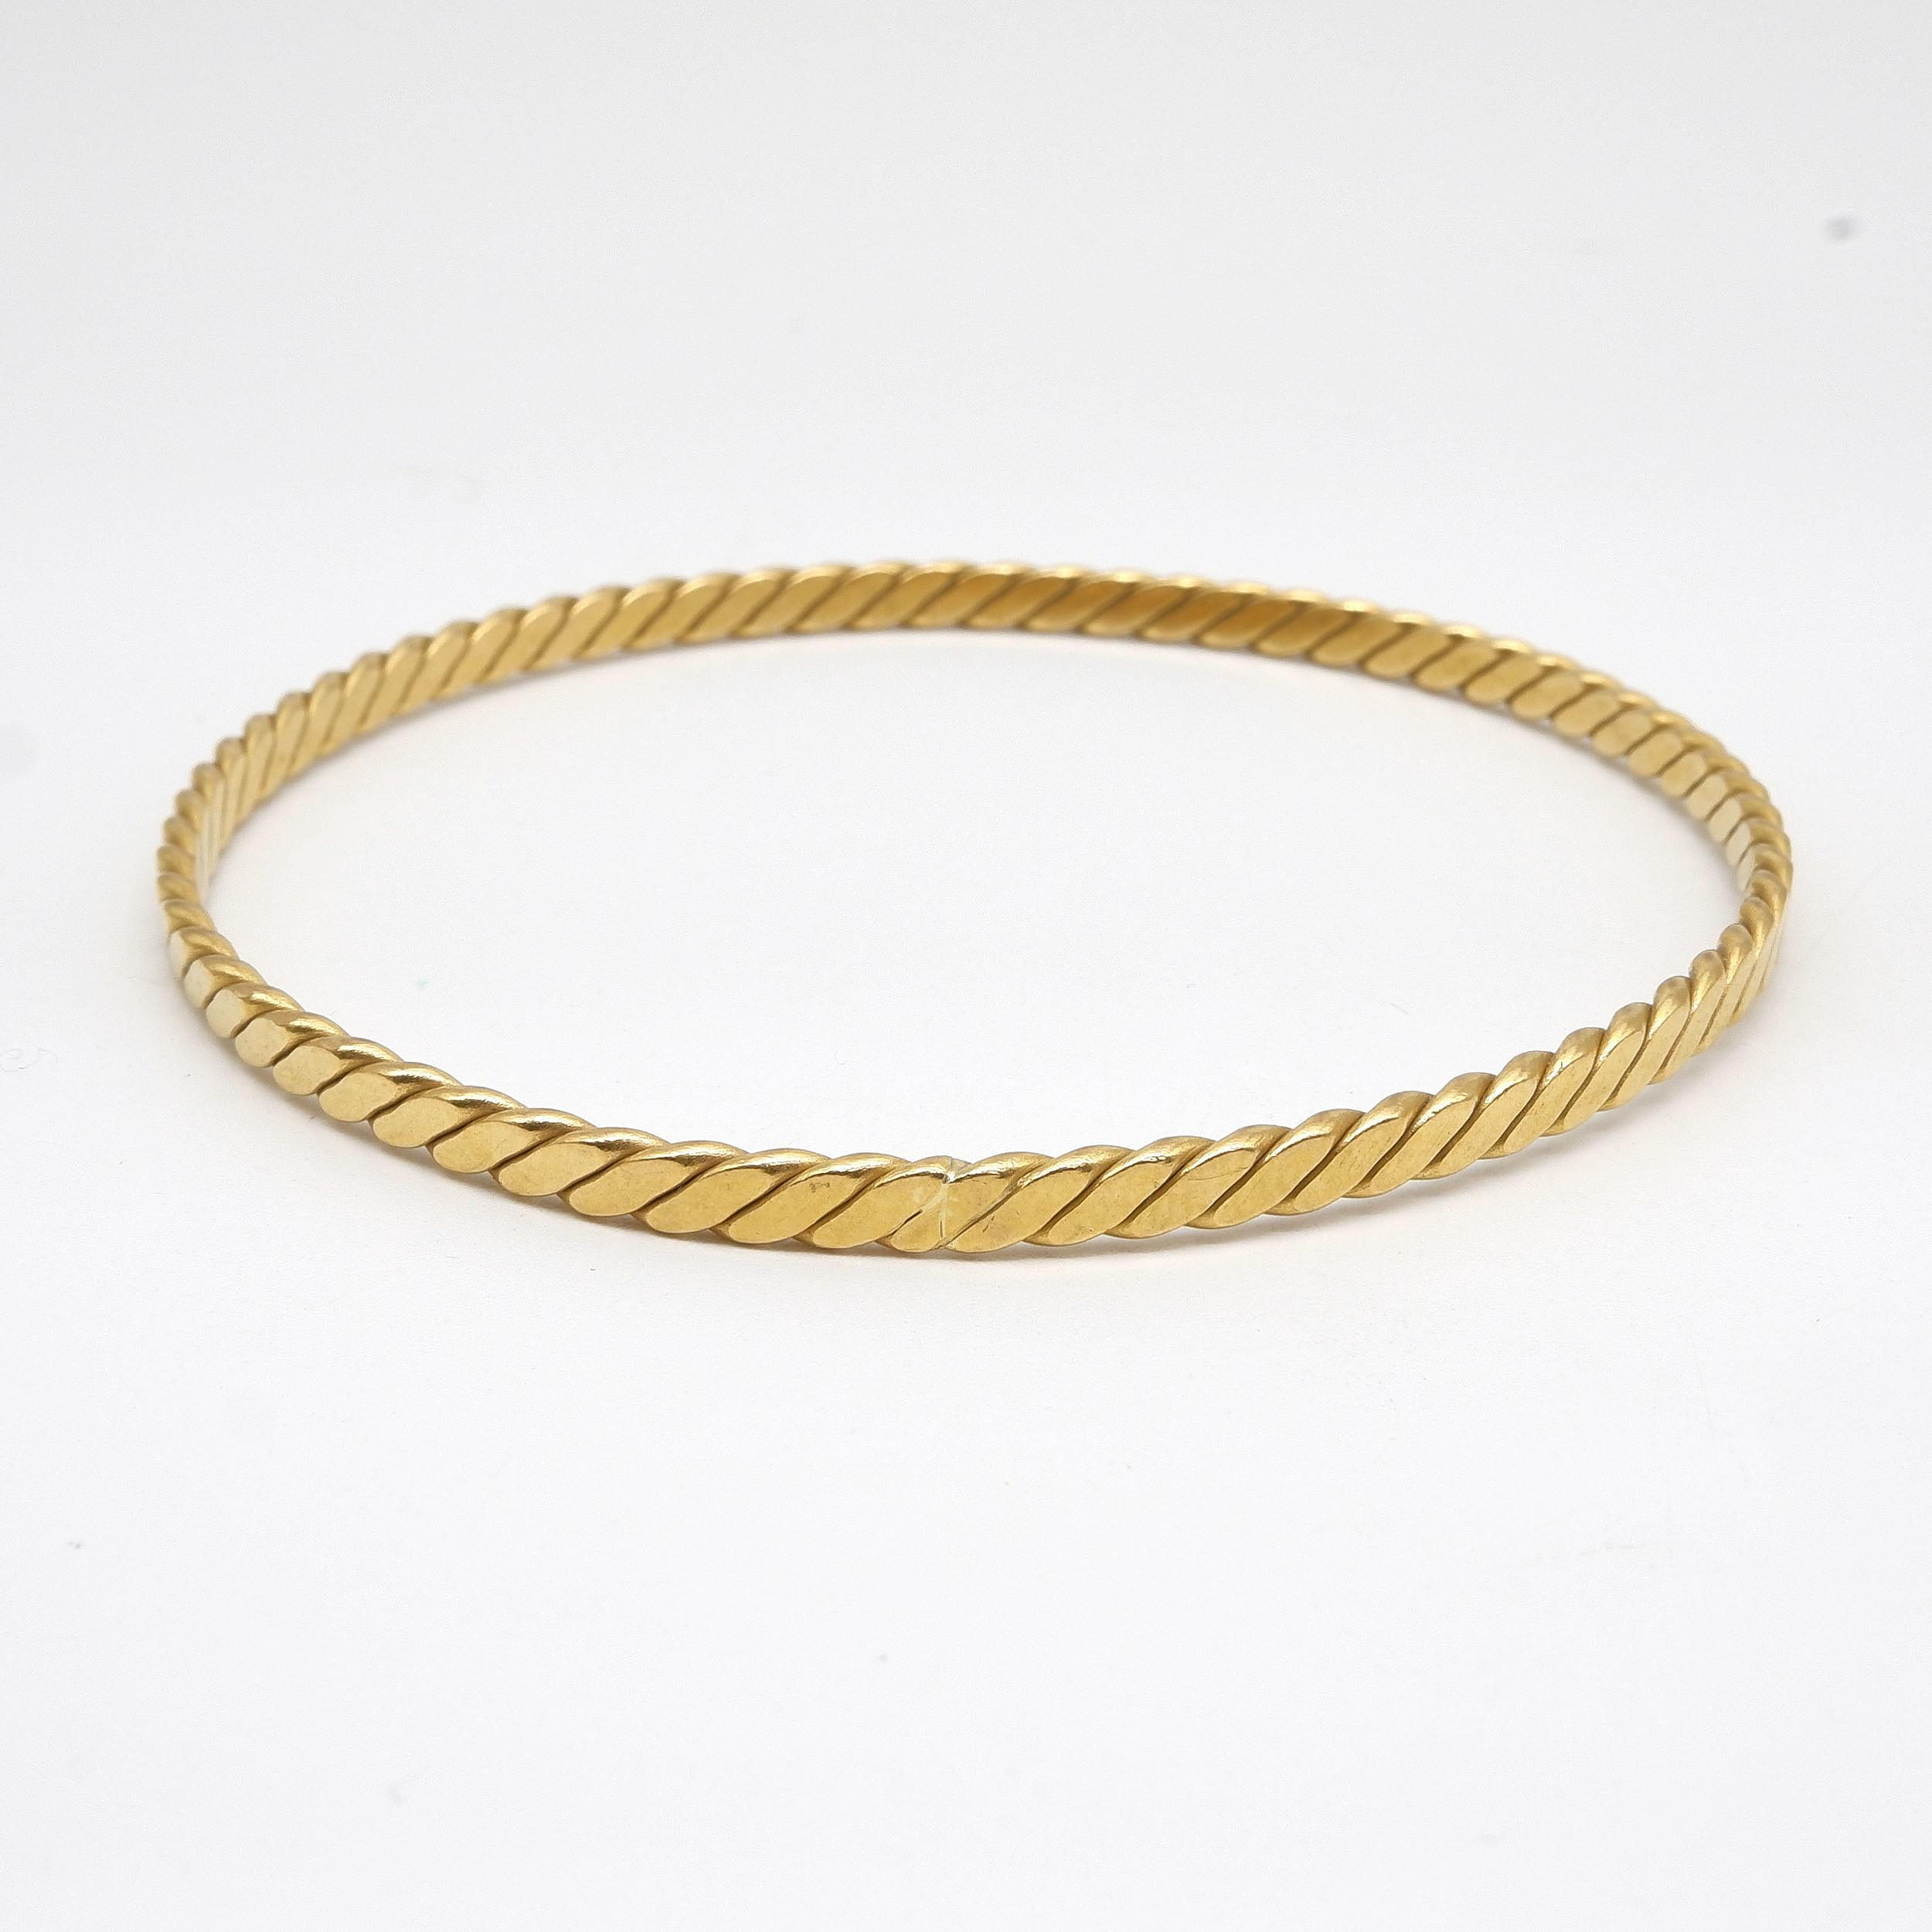 '18ct Yellow Gold Twisted Bangle, 21.1g'